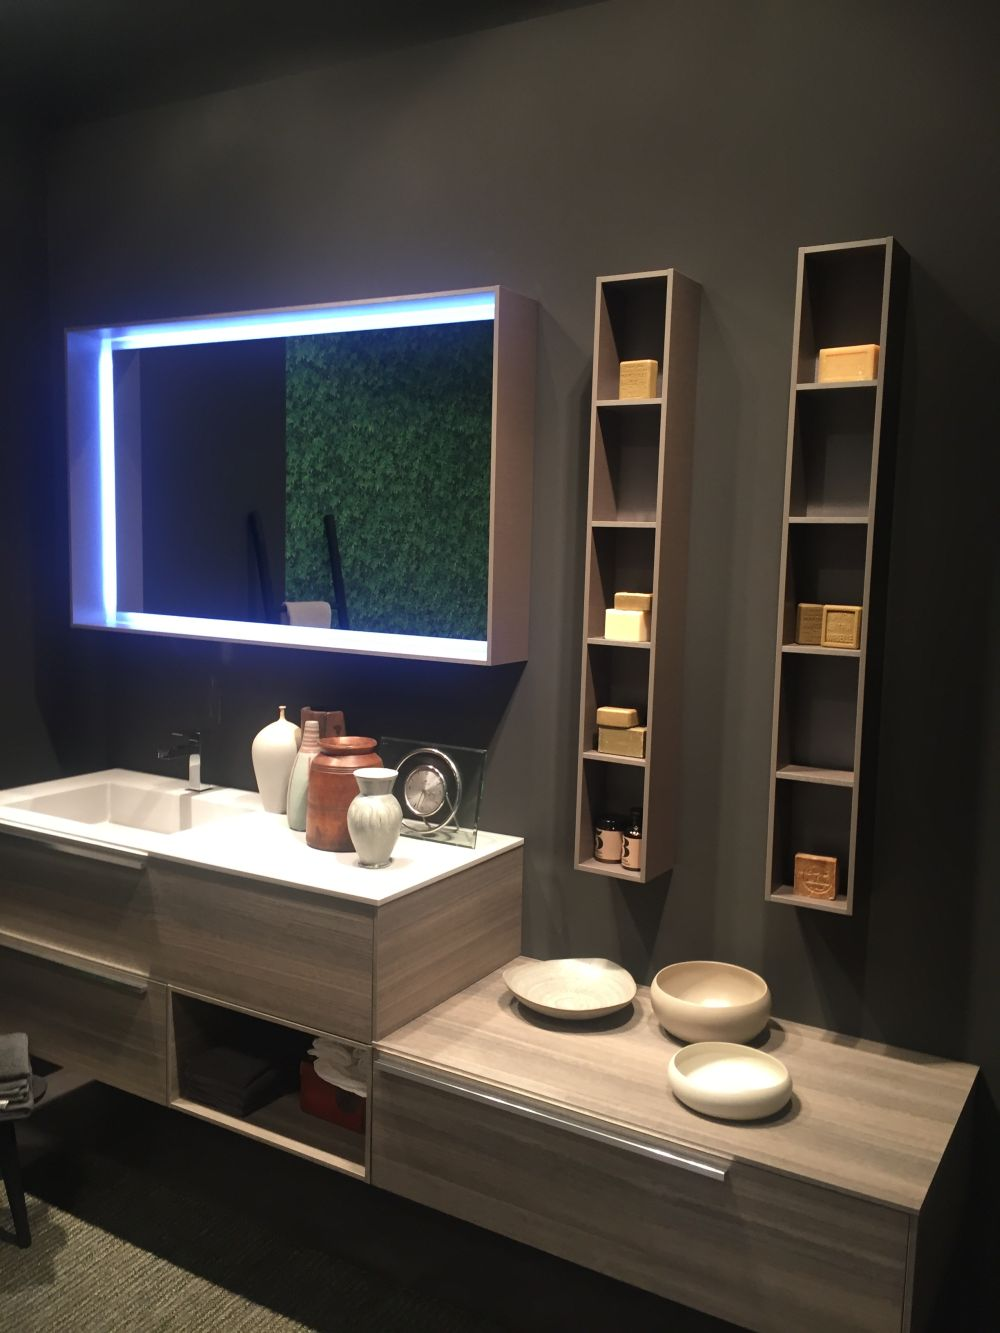 Bathroom Storage And Shelving bathroom storage shelves - the design commitment you won't regret